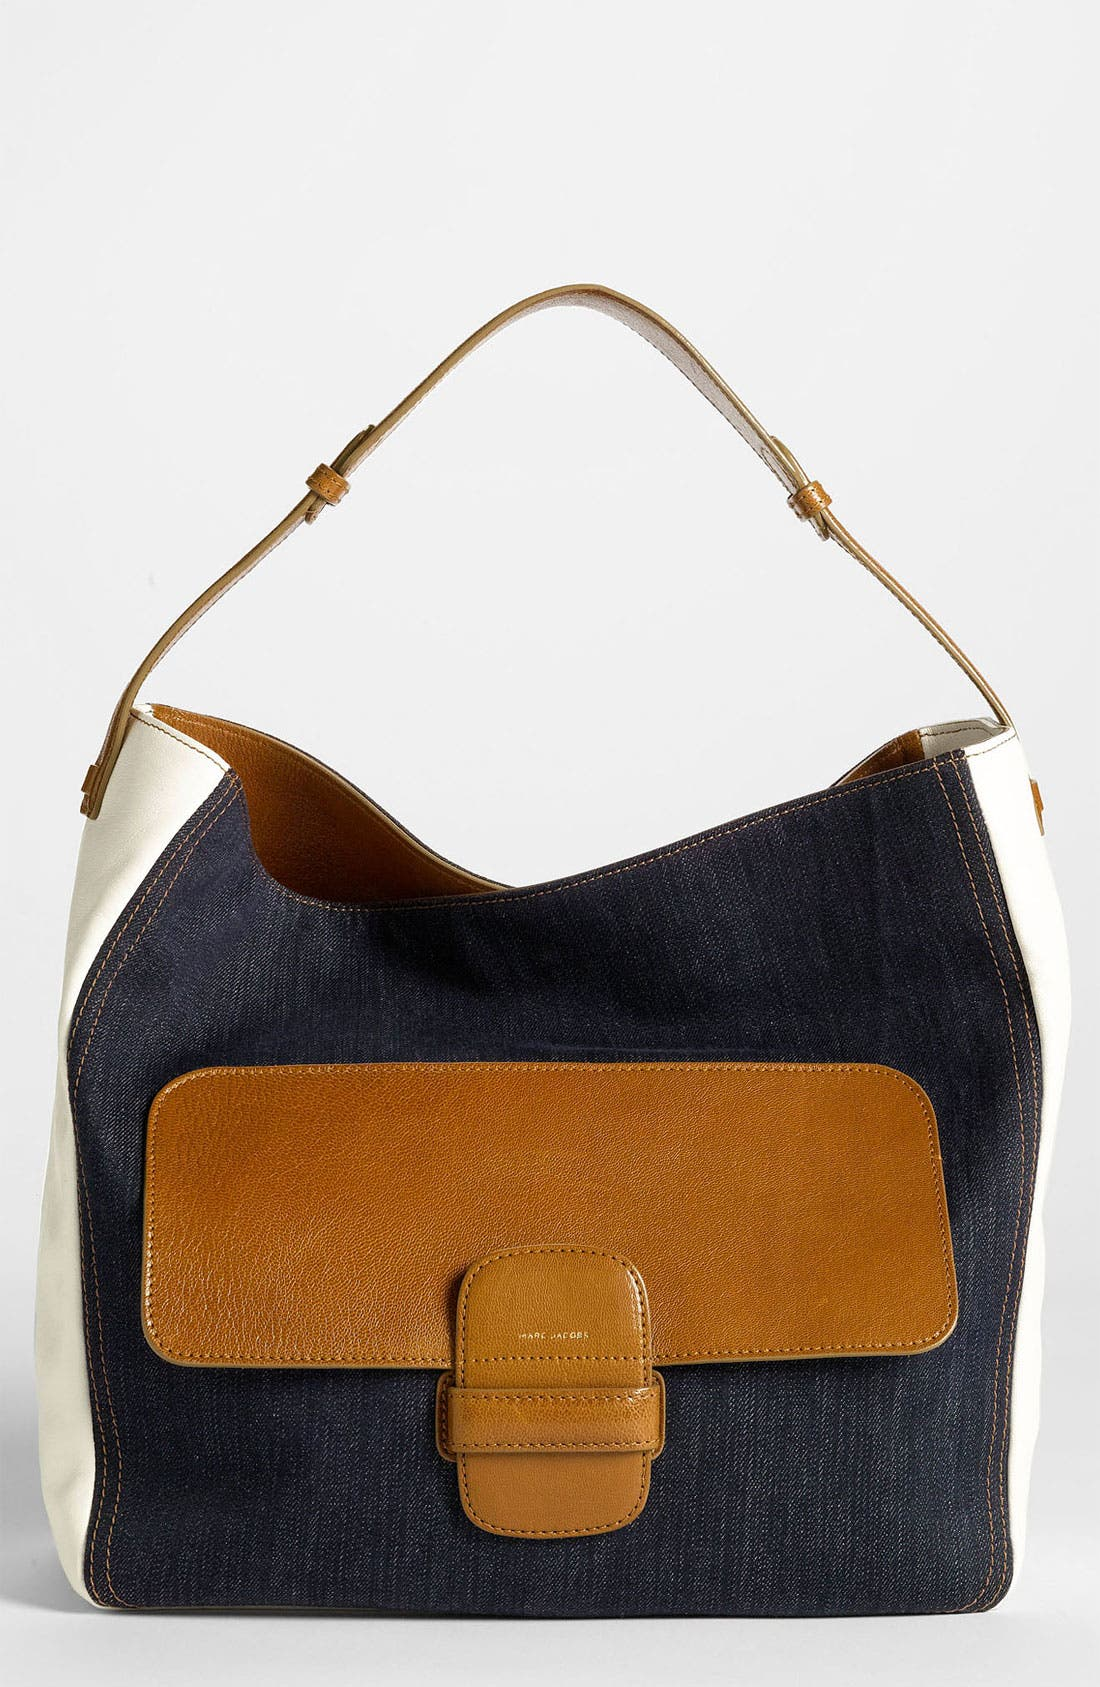 Alternate Image 1 Selected - MARC JACOBS Denim & Leather Hobo